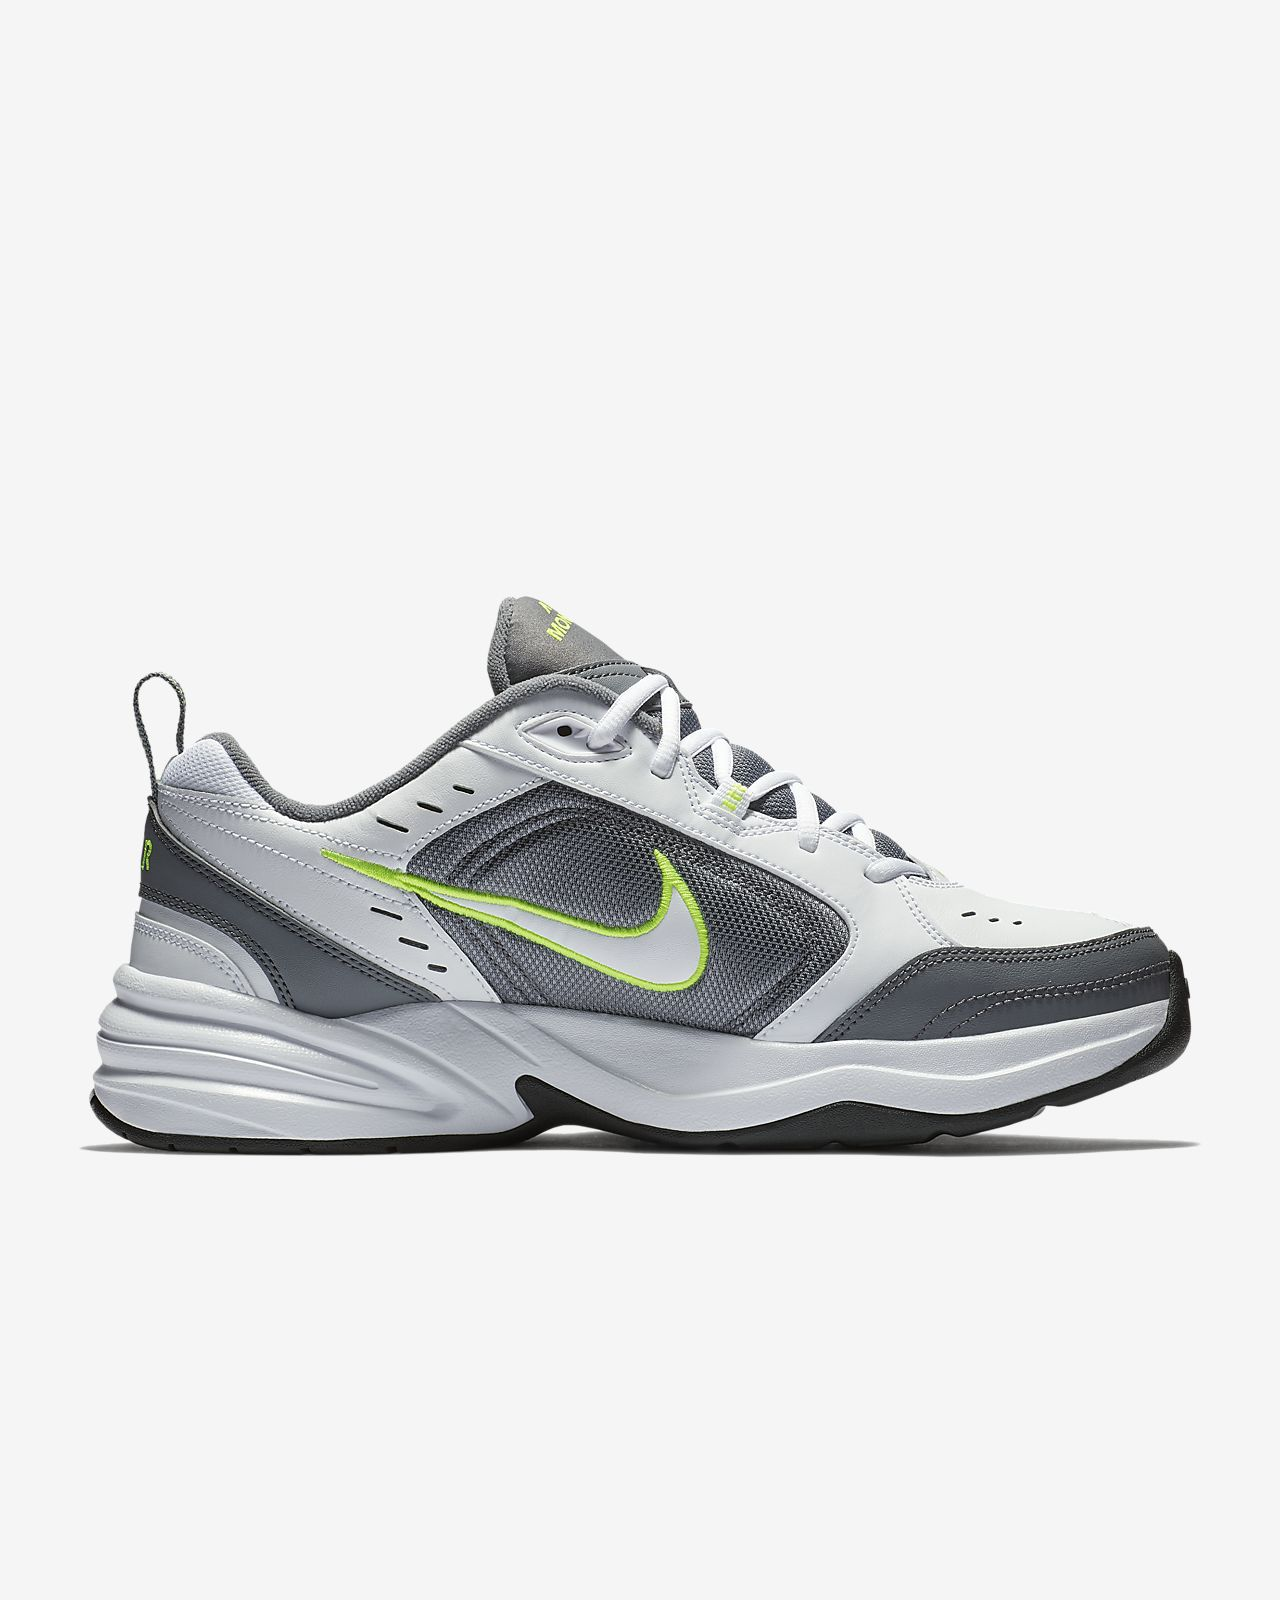 a980c2d20653a9 Low Resolution Nike Air Monarch IV Lifestyle Gym Shoe Nike Air Monarch IV  Lifestyle Gym Shoe